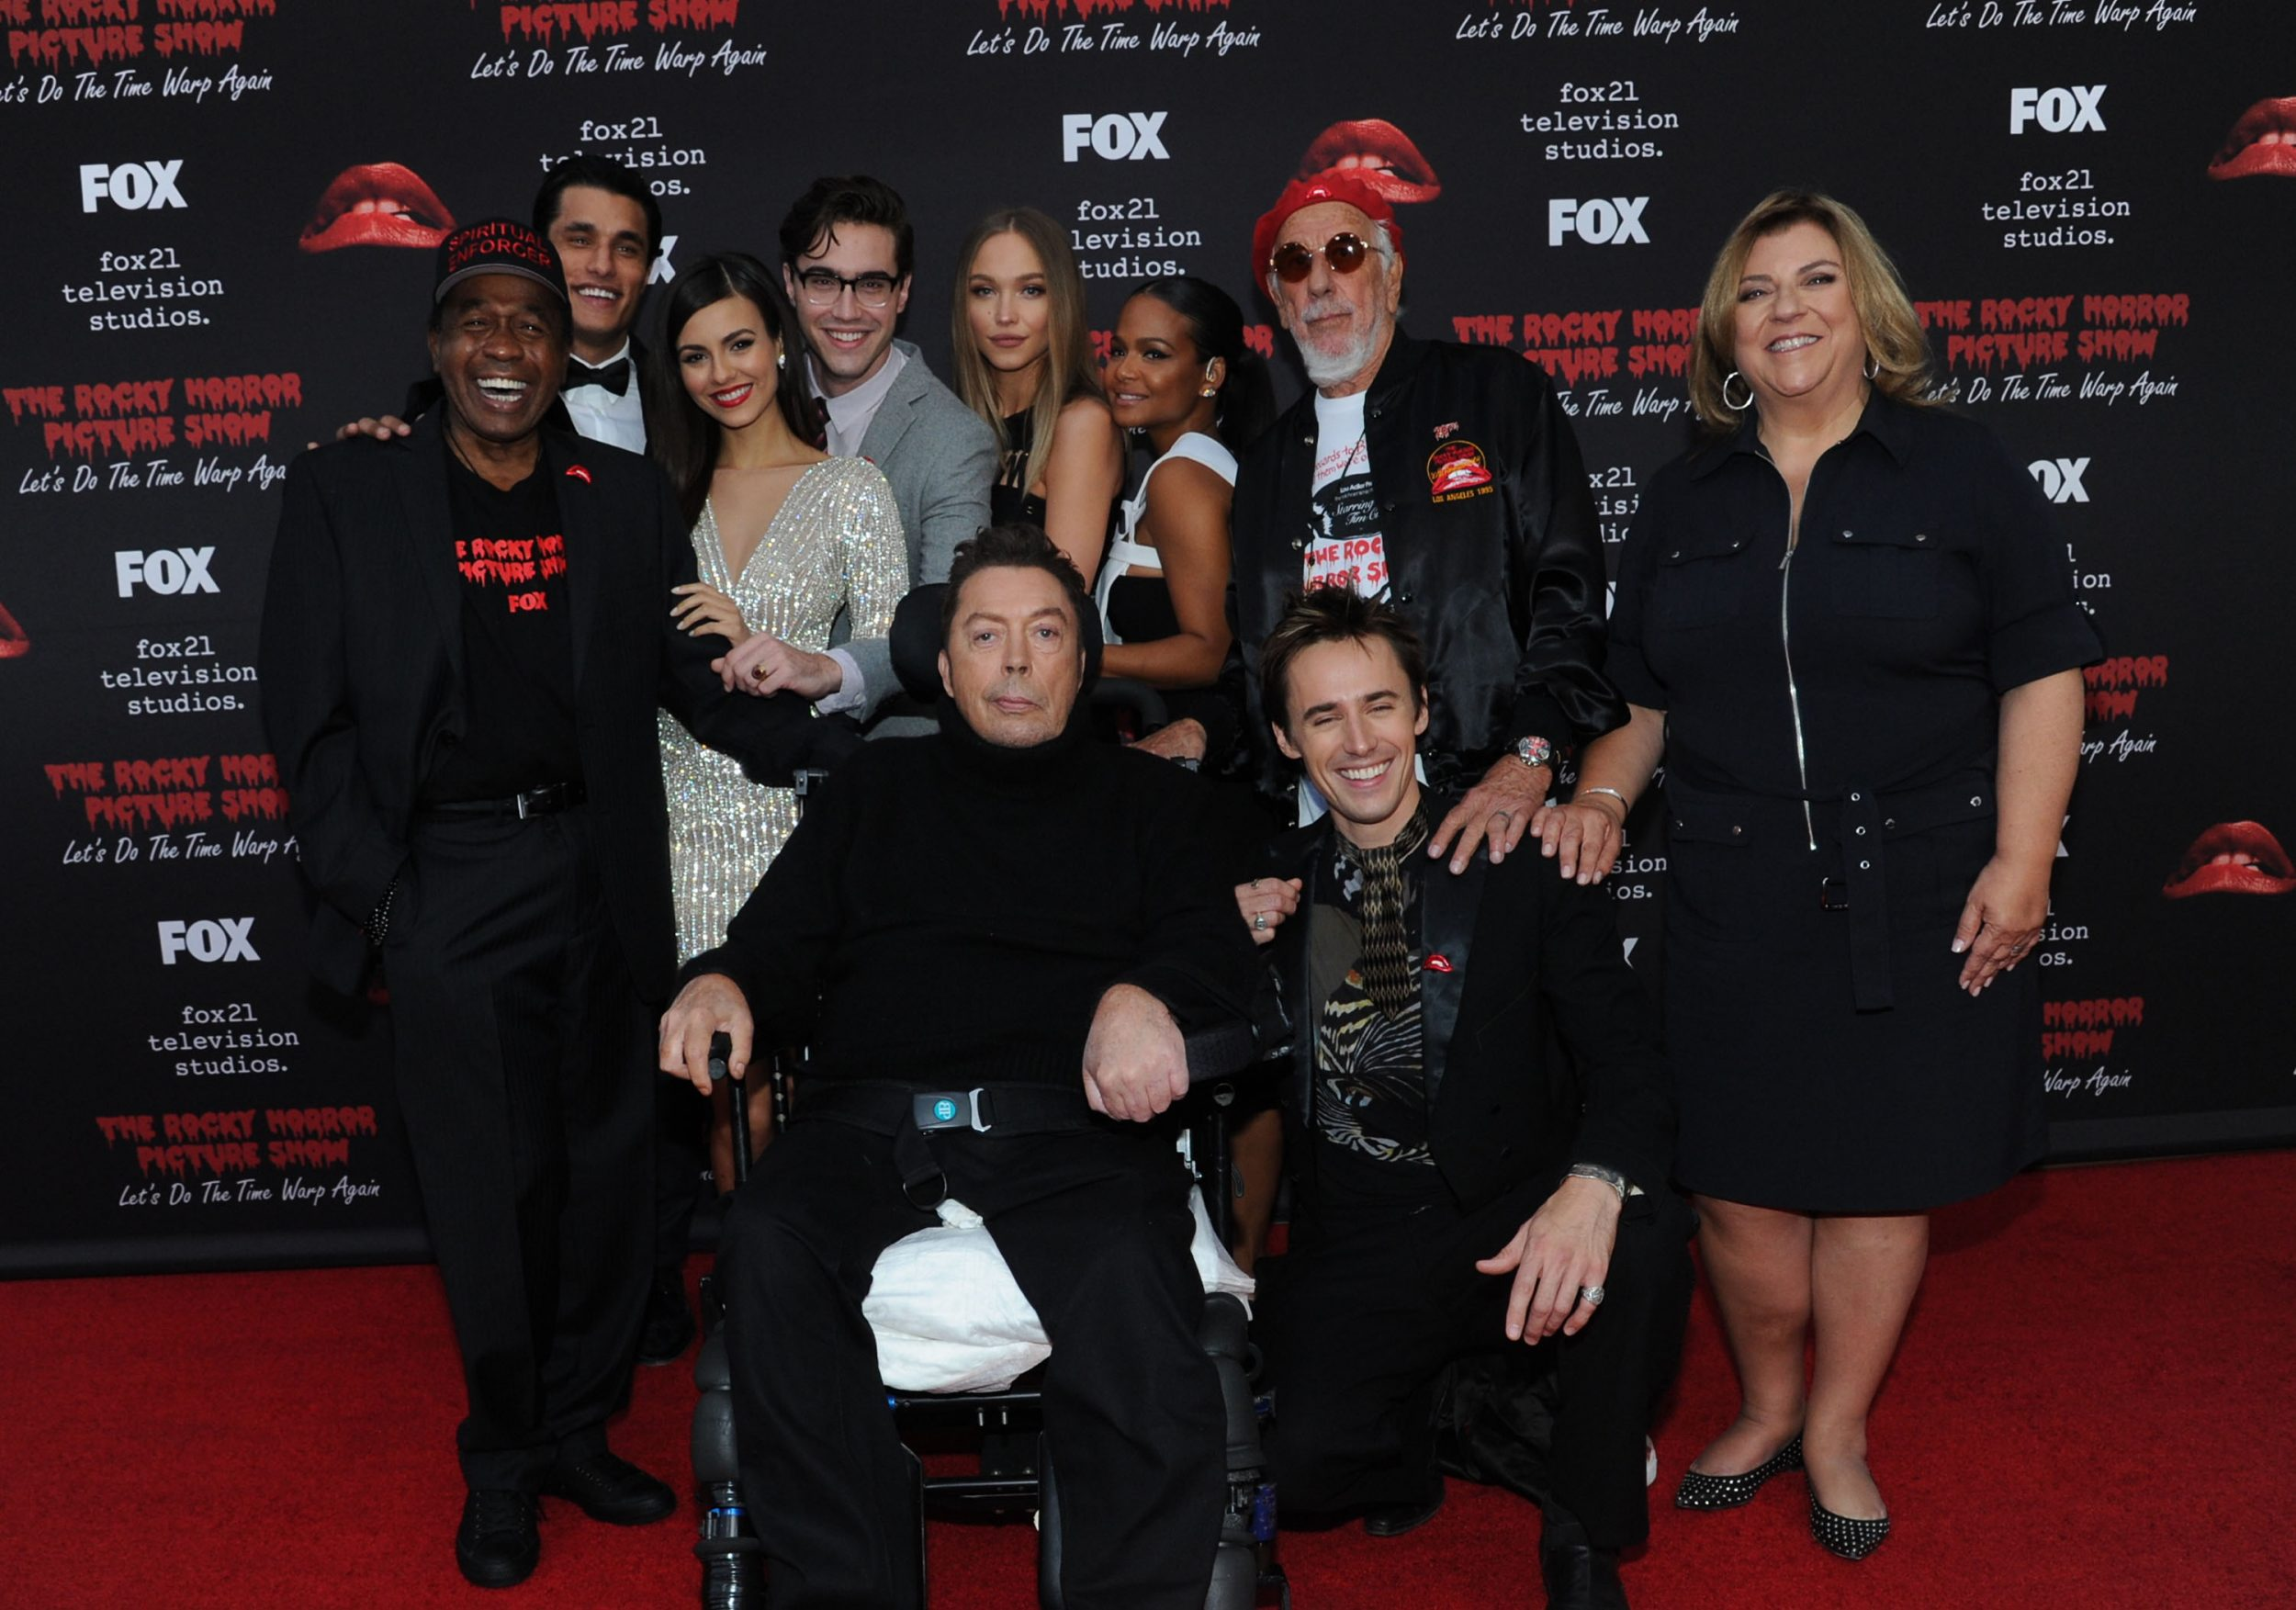 THE ROCKY HORROR PICTURE SHOW: Let's Do The Time Warp Again (and Transylvanians!): L-R: Cast members Ben Vereen, Staz Nair, Victoria Justice, Ryan McCartan, Tim Curry, Ivy Levan, Christina Milian, Reeve Carney and Executive Producers Lou Adler and Gail Berman arrive at THE ROCKY HORROR PICTURE SHOW: Let's Do The Time Warp Again (and Transylvanians!) premiere party red carpet at The Roxy on Thursday, Oct. 13, in Los Angeles, CA. THE ROCKY HORROR PICTURE SHOW: Let's Do The Time Warp Again (And Transylvanians!) premieres Thursday, Oct. 20 (8:00-10:00 PM ET/PT) on FOX. © 2016 FOX BROADCASTING CR: Richard Shotwell/FOX